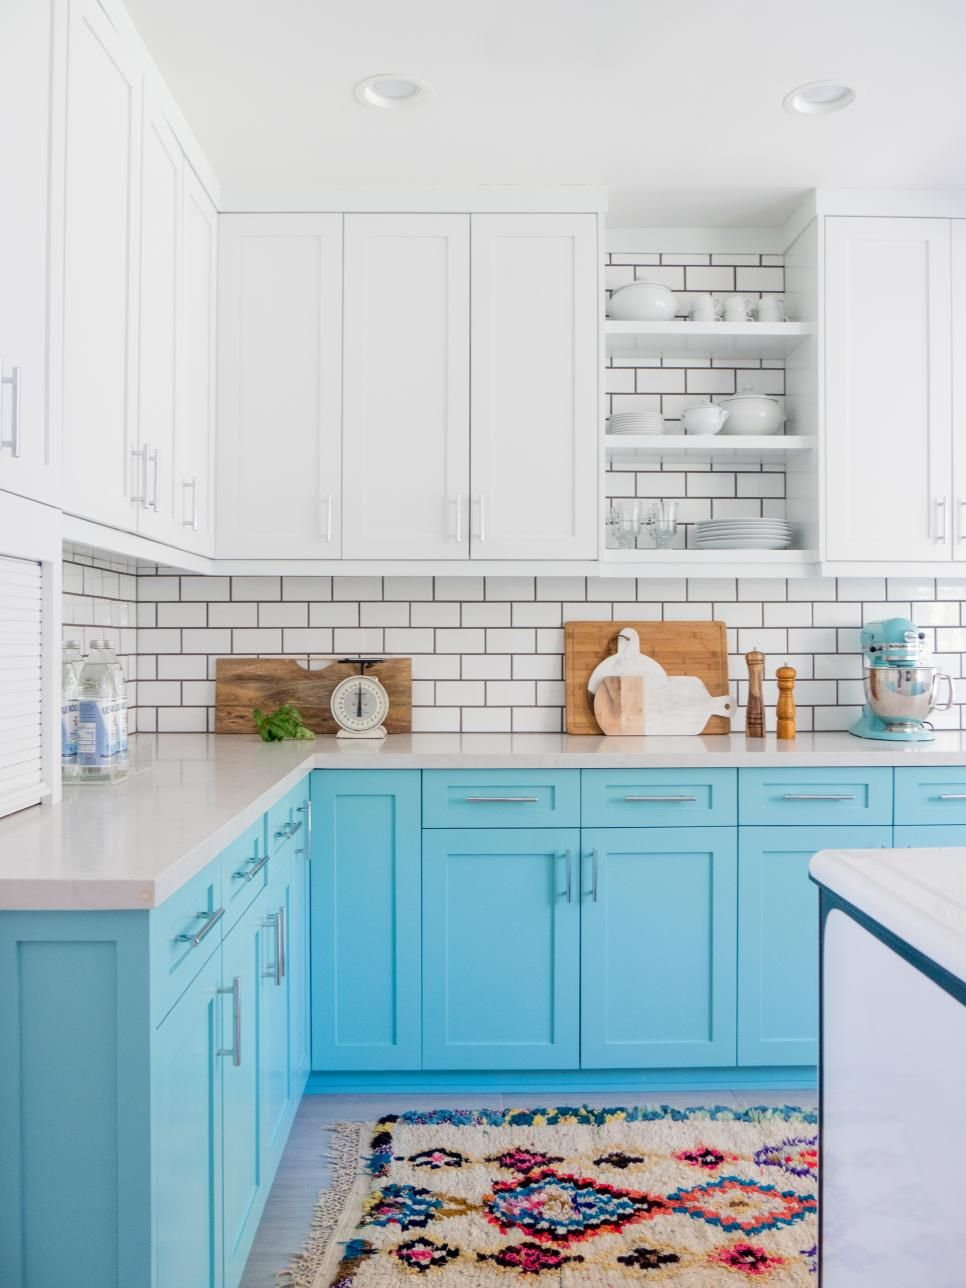 Blue and White Kitchen With Colorful Rug | home decor | Pinterest ...